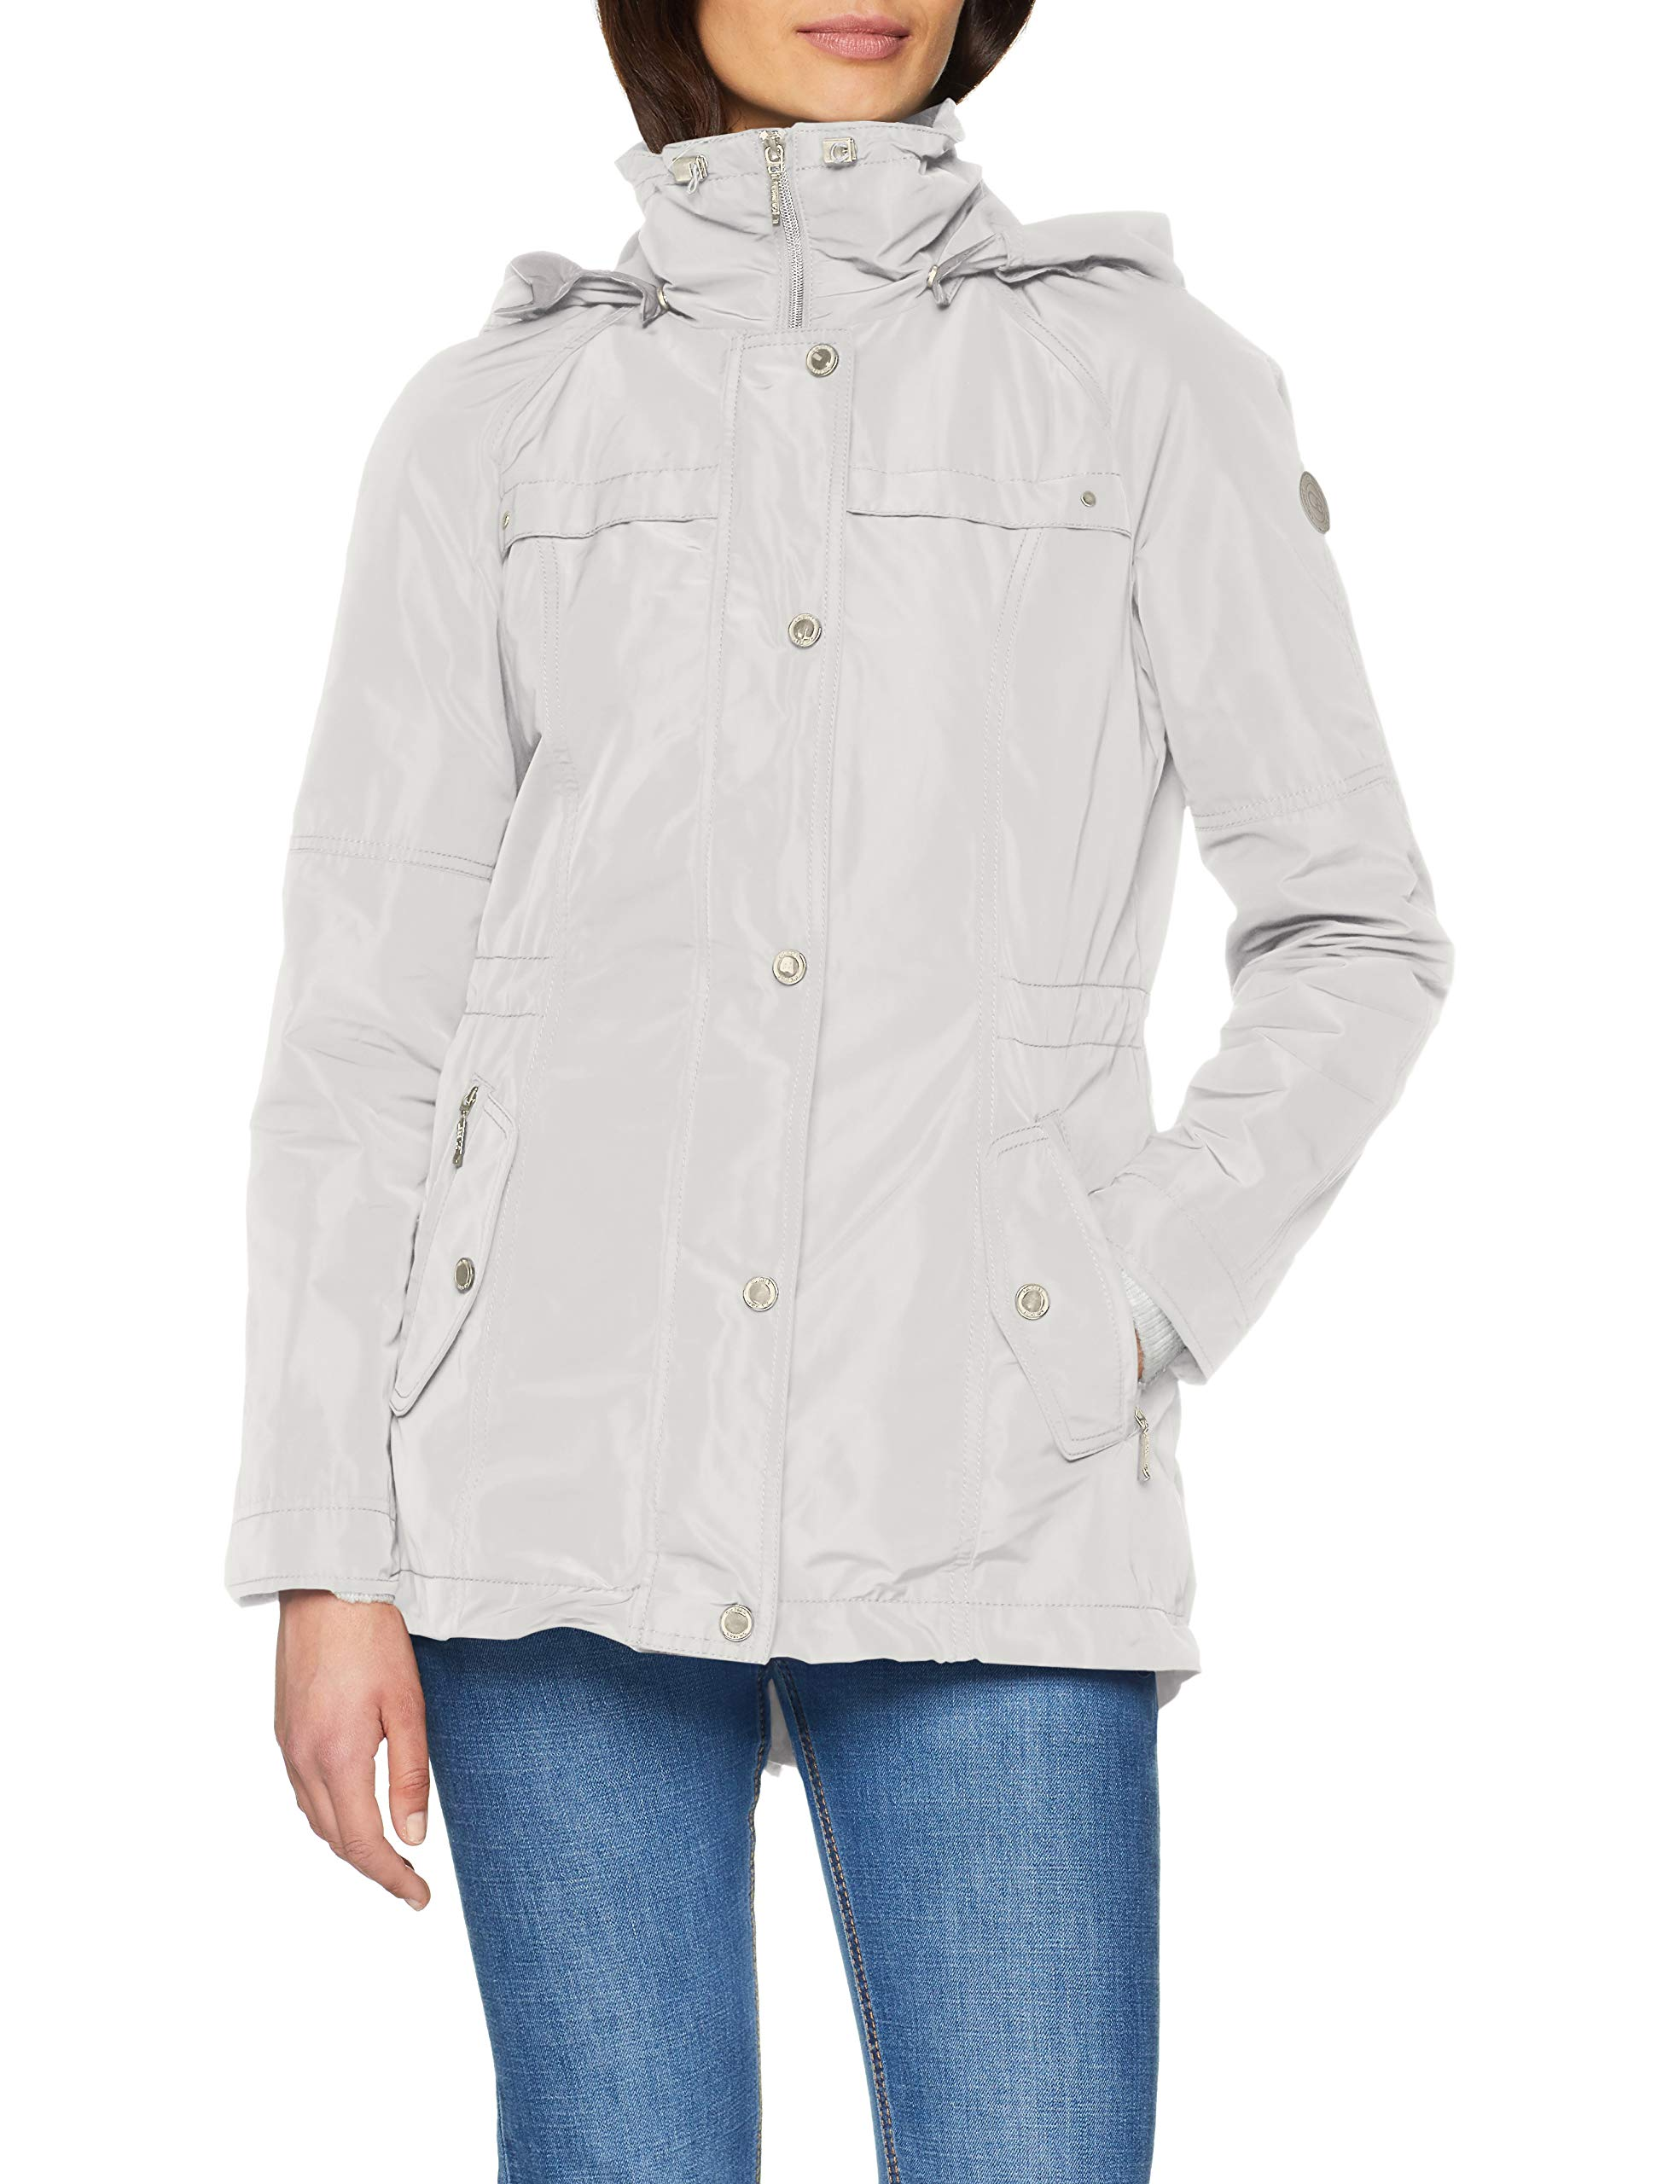 Bret 9082 5250 BlousonGriswind Fabricant40Femme 900042taille Chime Gil FT3K1Jcl